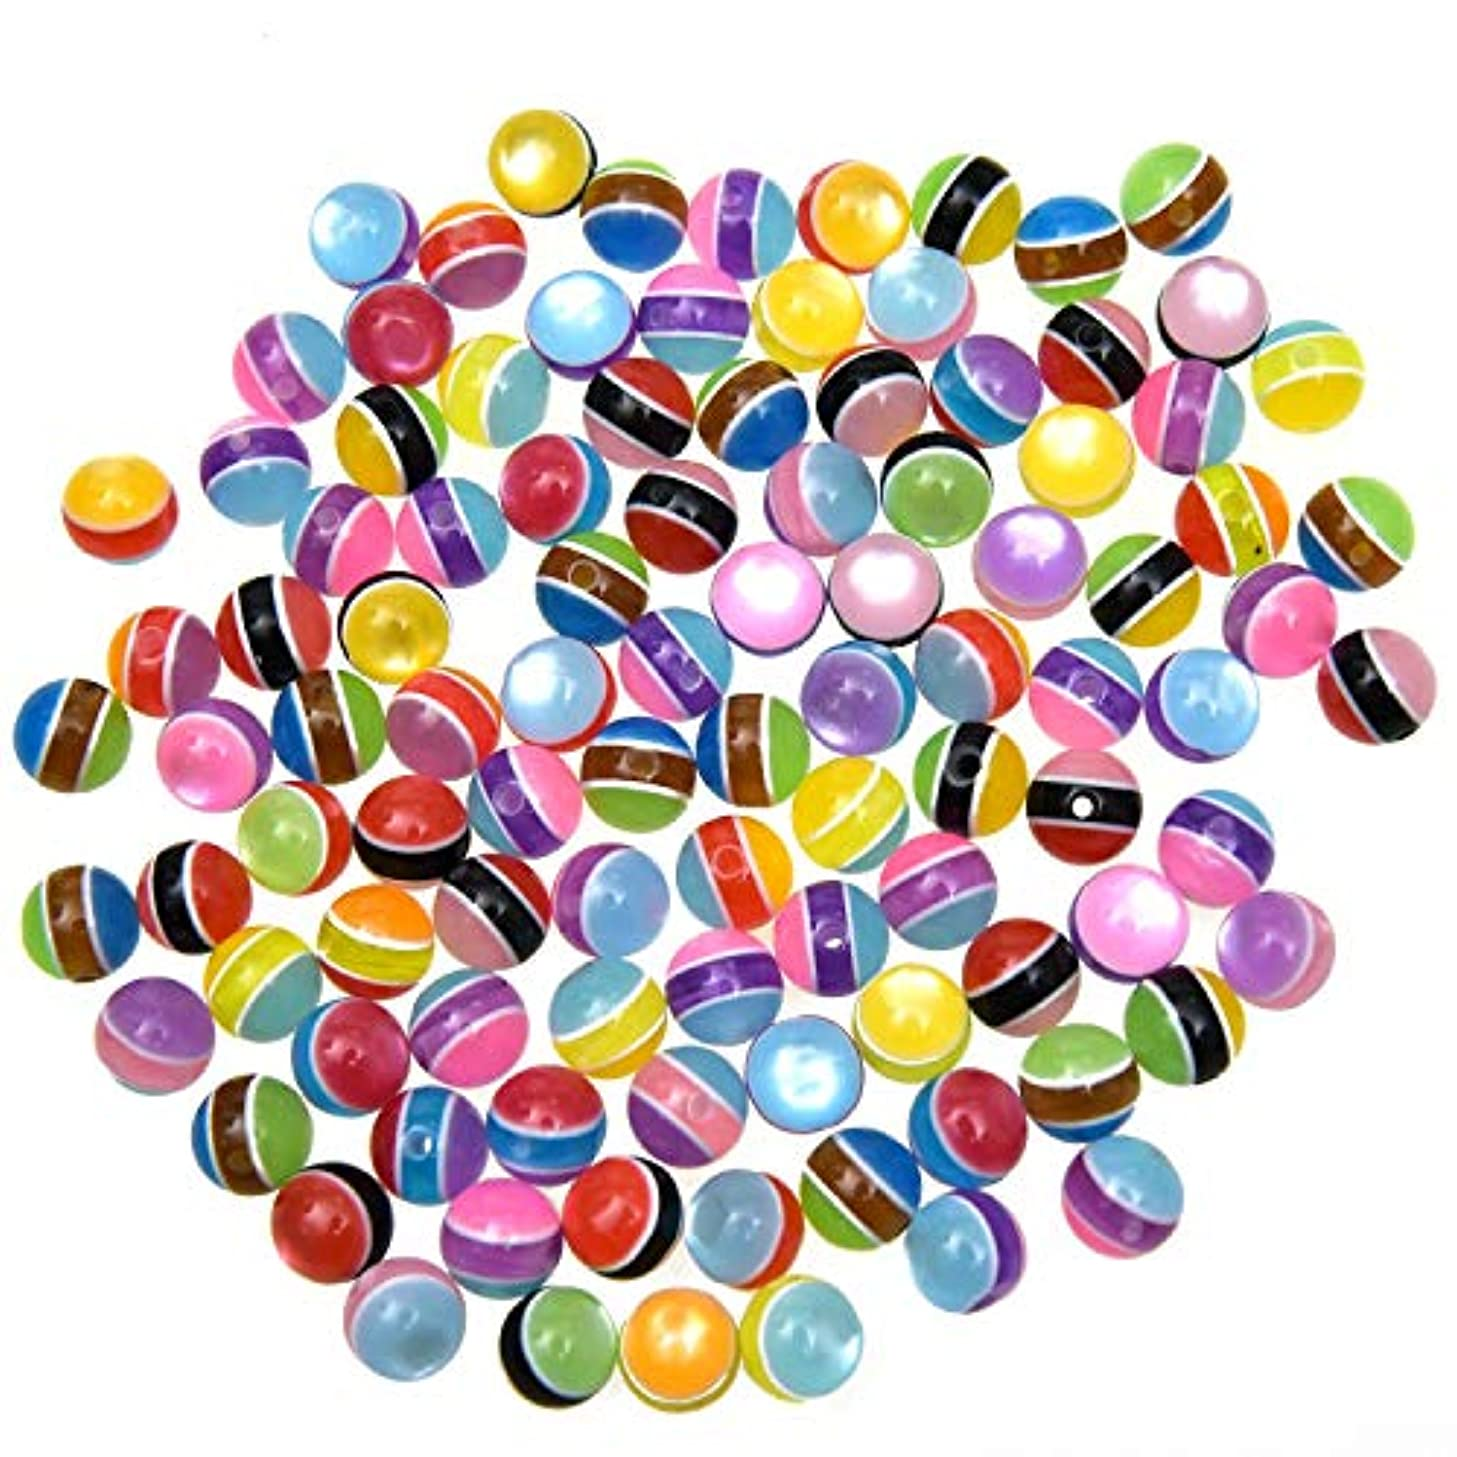 Monrocco 100 Pcs Three-Color Stripe Resin Beads DIY Jewelry Accessories Hand Earrings Bead Material 10MM for Handmade Beading Bracelet Necklace Jewelry Making